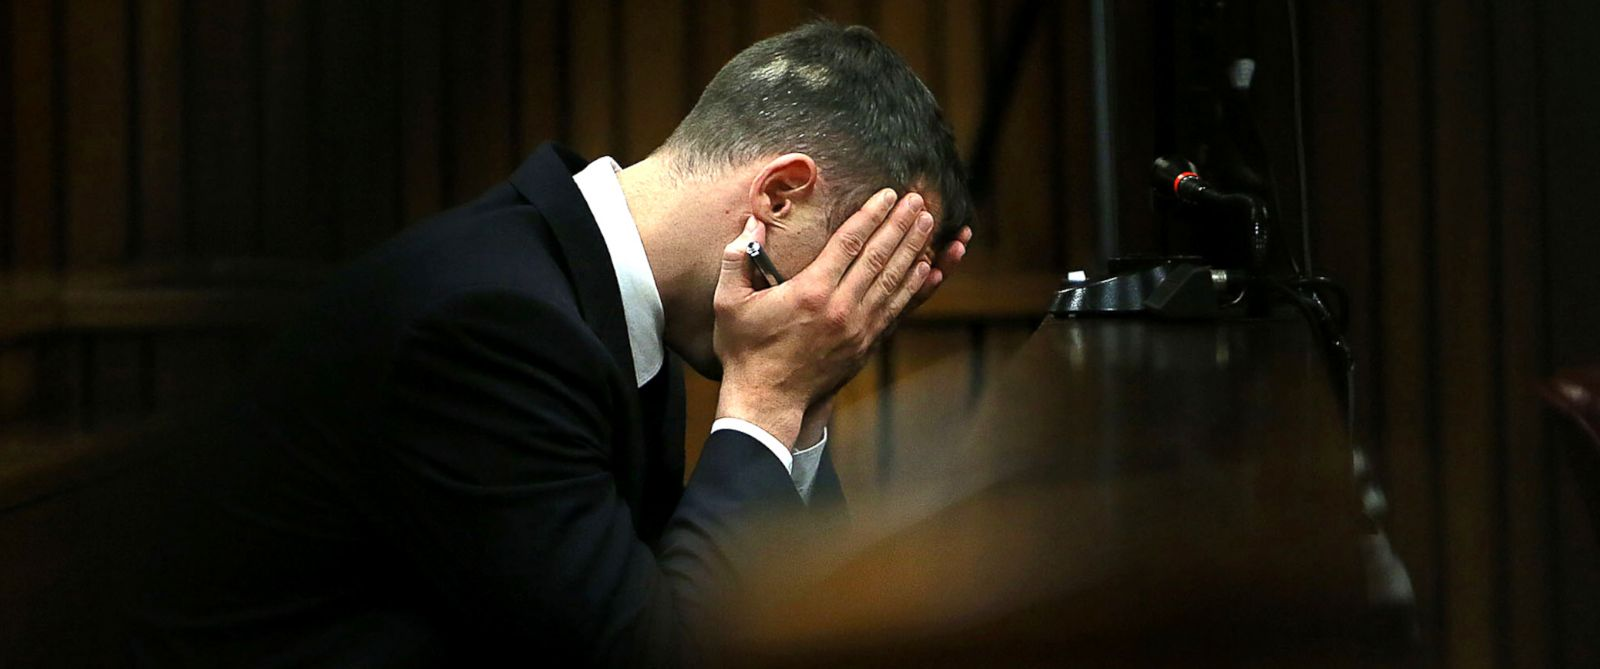 PHOTO: Oscar Pistorius holds his head in his hands as he listens to evidence being given in court in Pretoria, South Africa, April 15, 2014.